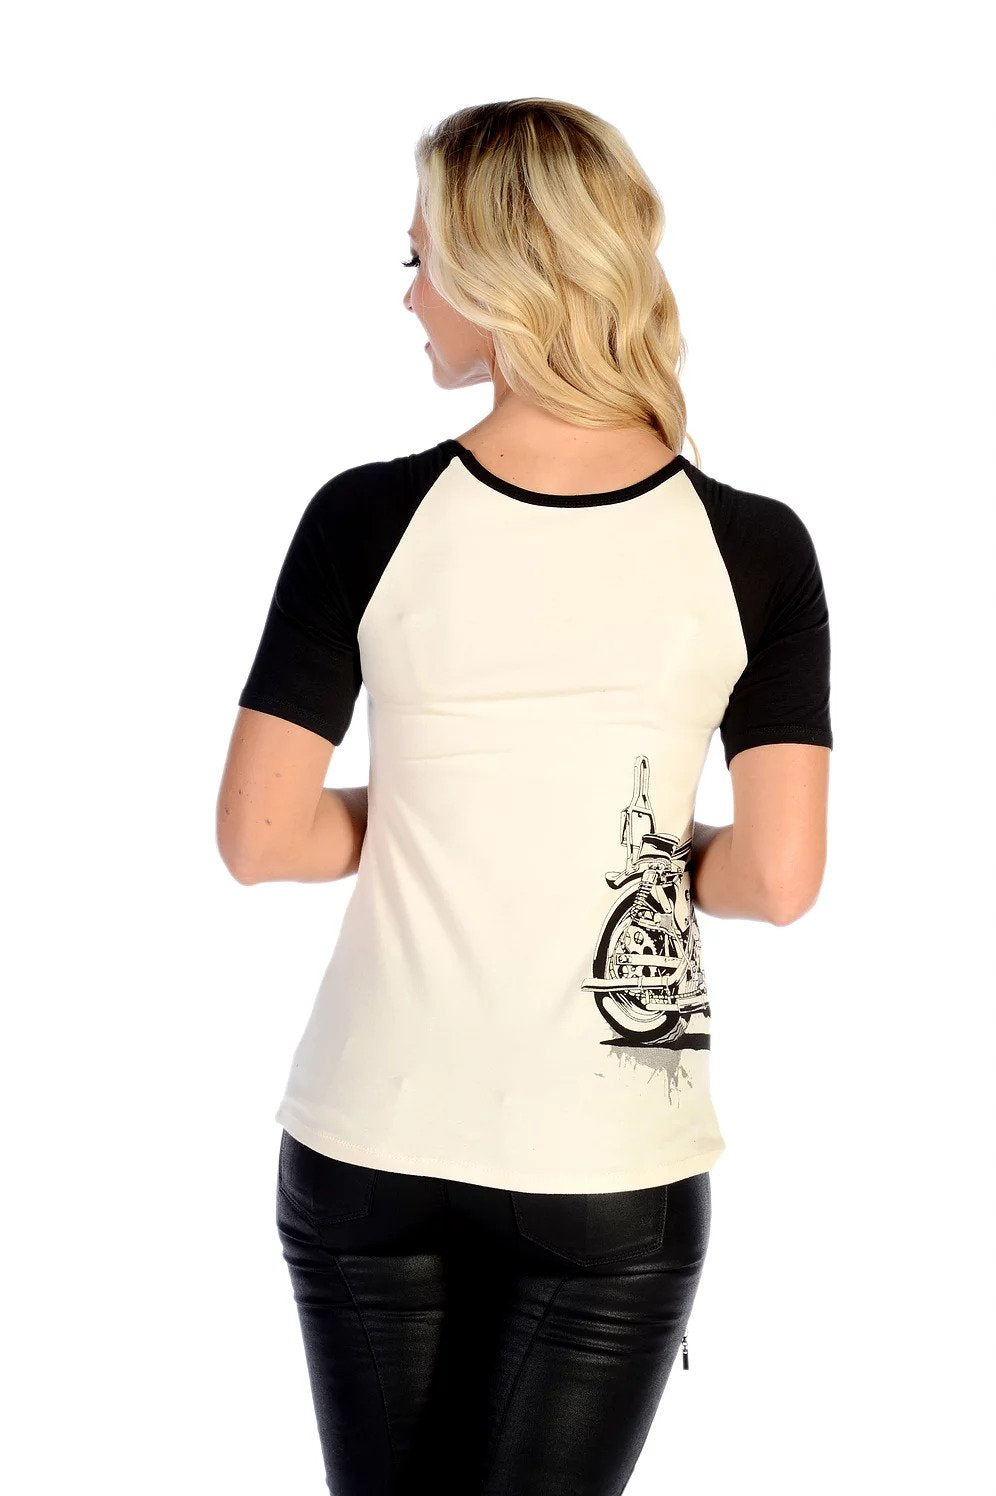 Women's Vintage Bike Baseball Tee - 7122